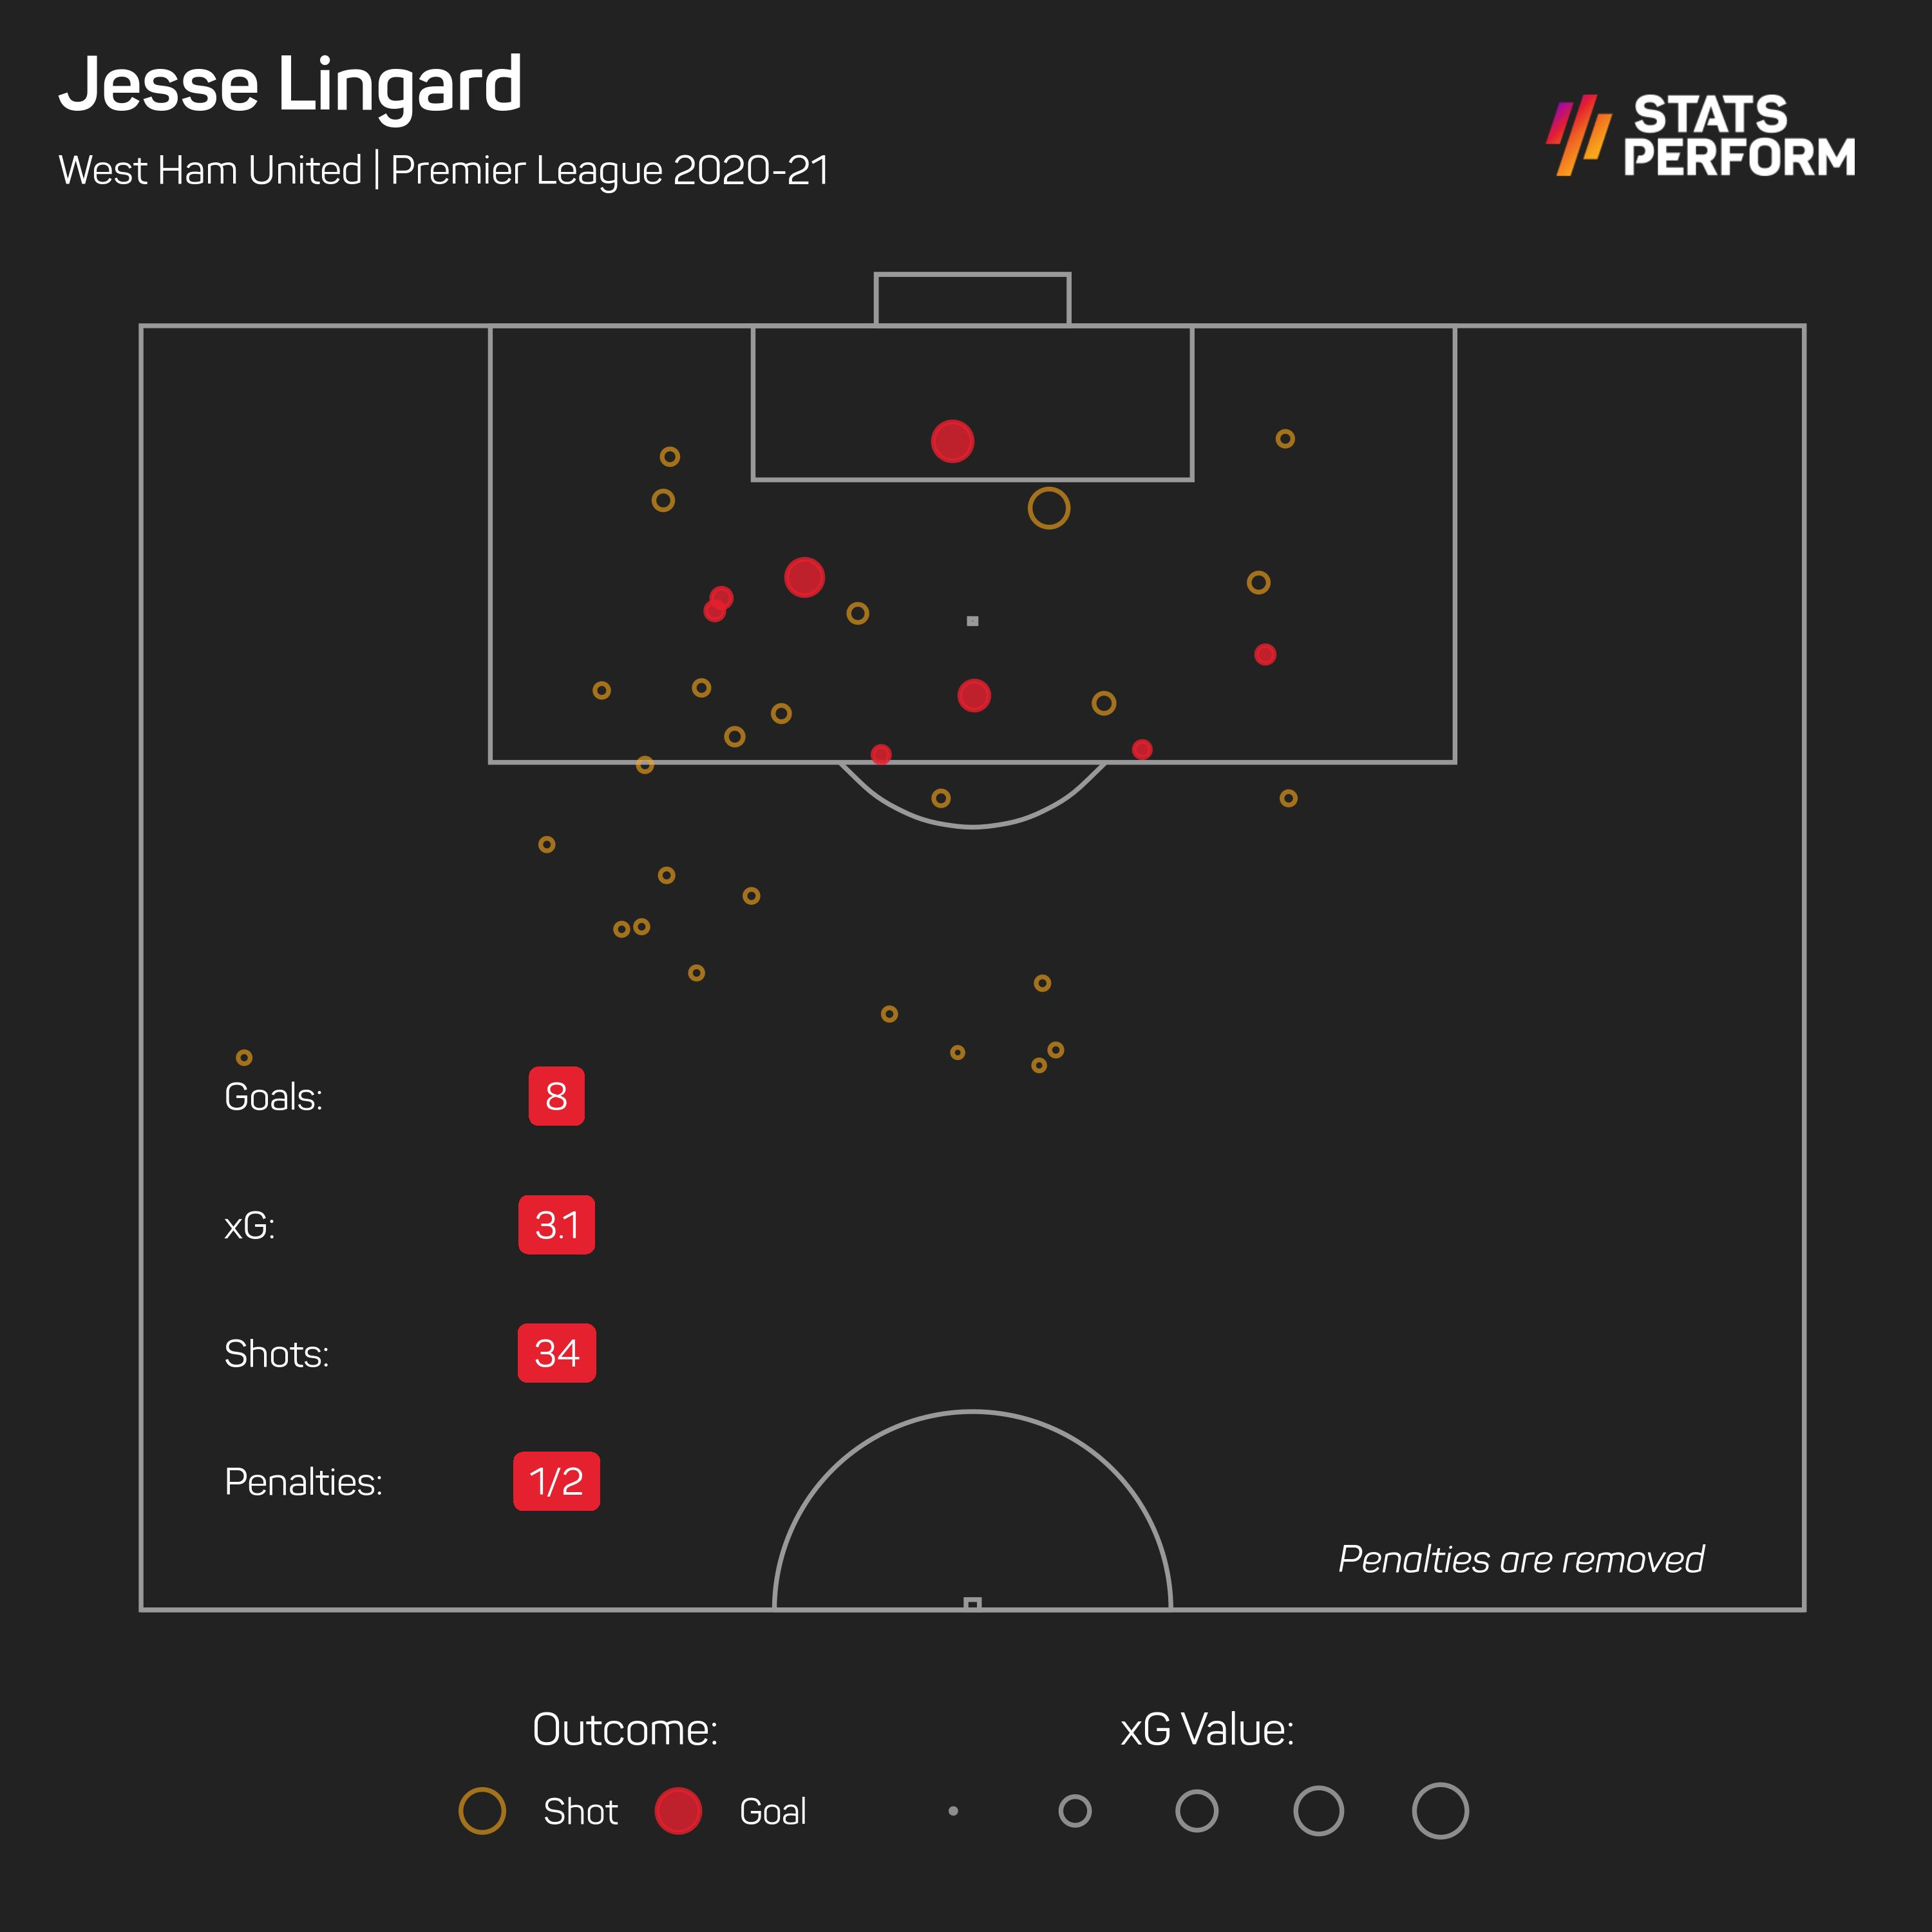 Jesse Lingard expected goals (May 11)